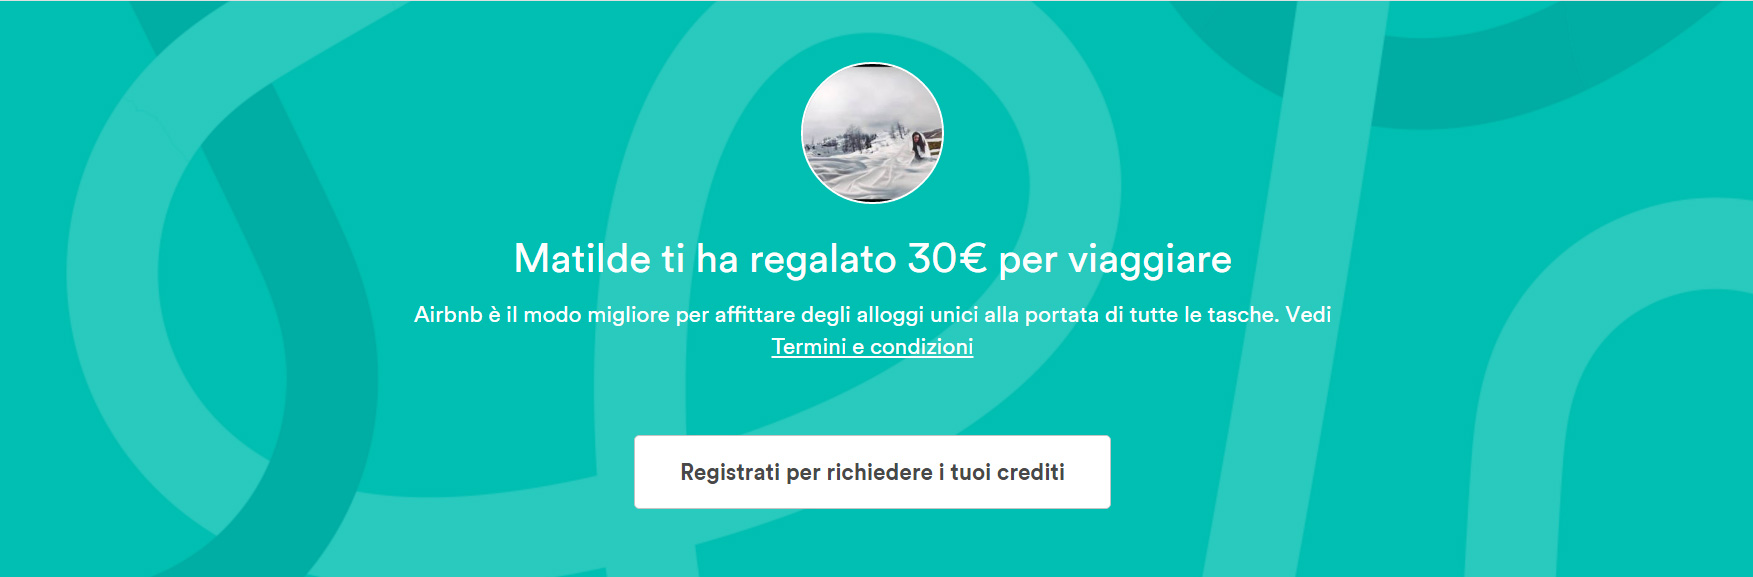 sconto-airbnb